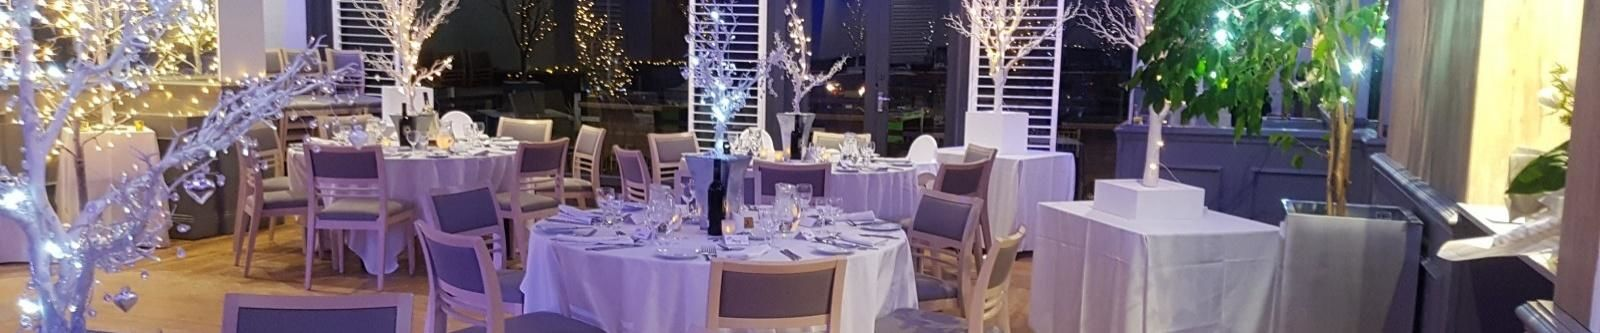 Ocean Beach Hotel & Spa Bournemouth - Private Events